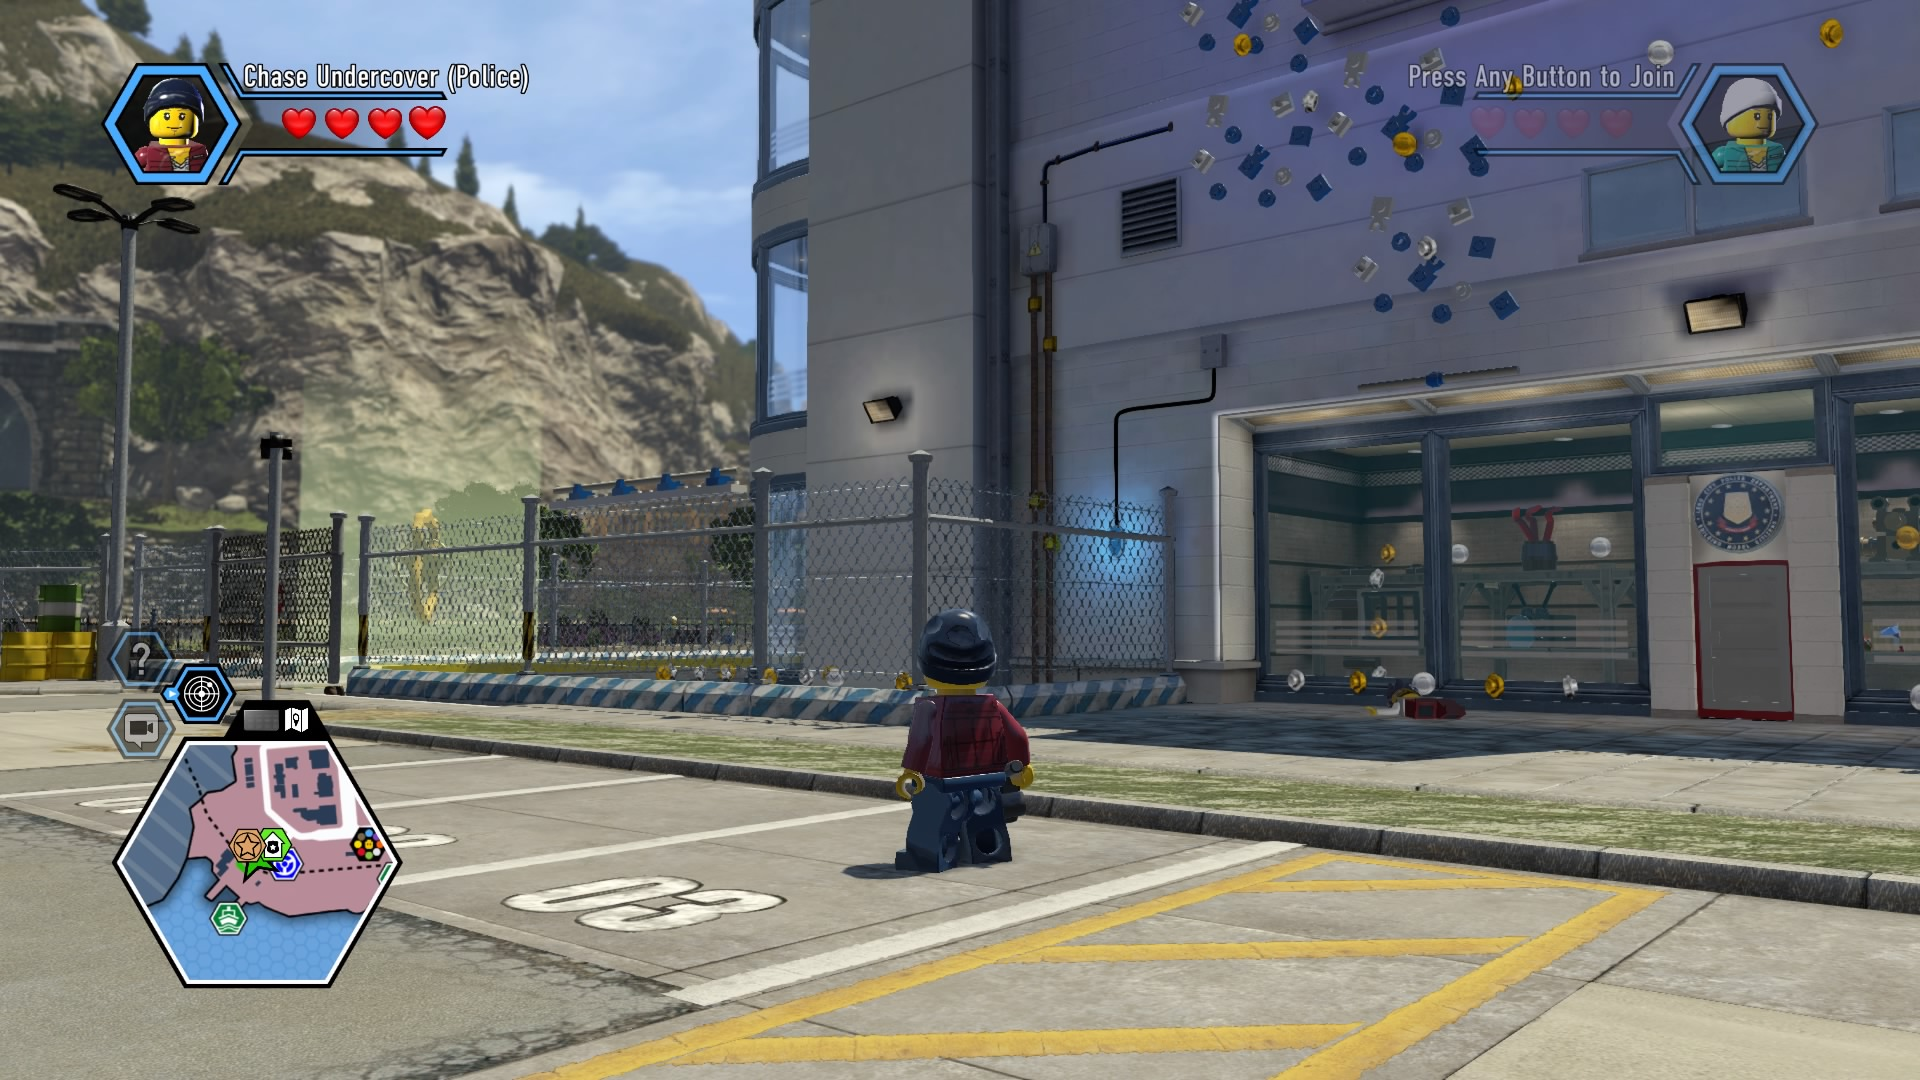 lego city undercover complete walkthrough  chapter 6